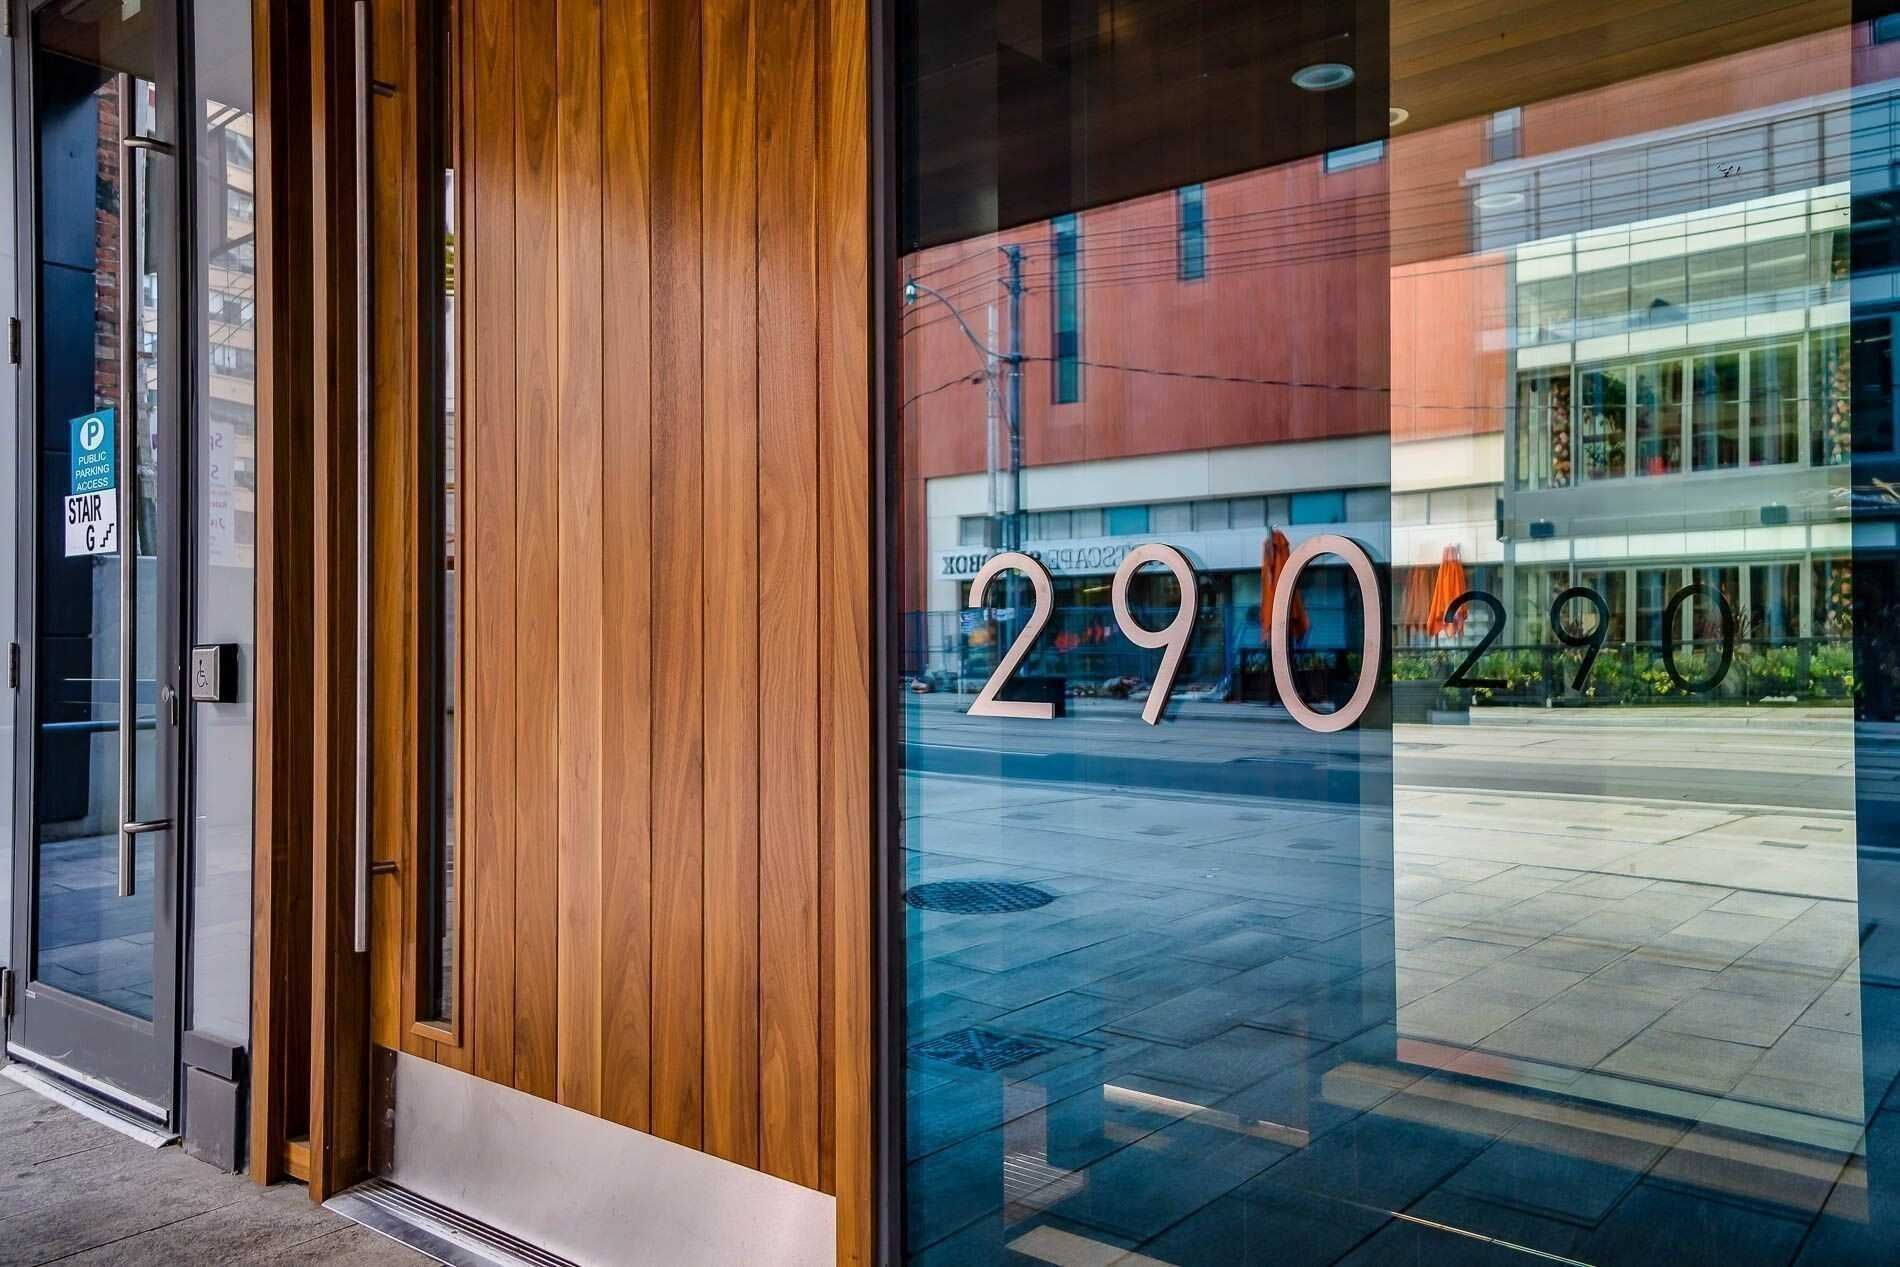 290 Adelaide St W, unit 4102 for rent in Toronto - image #1